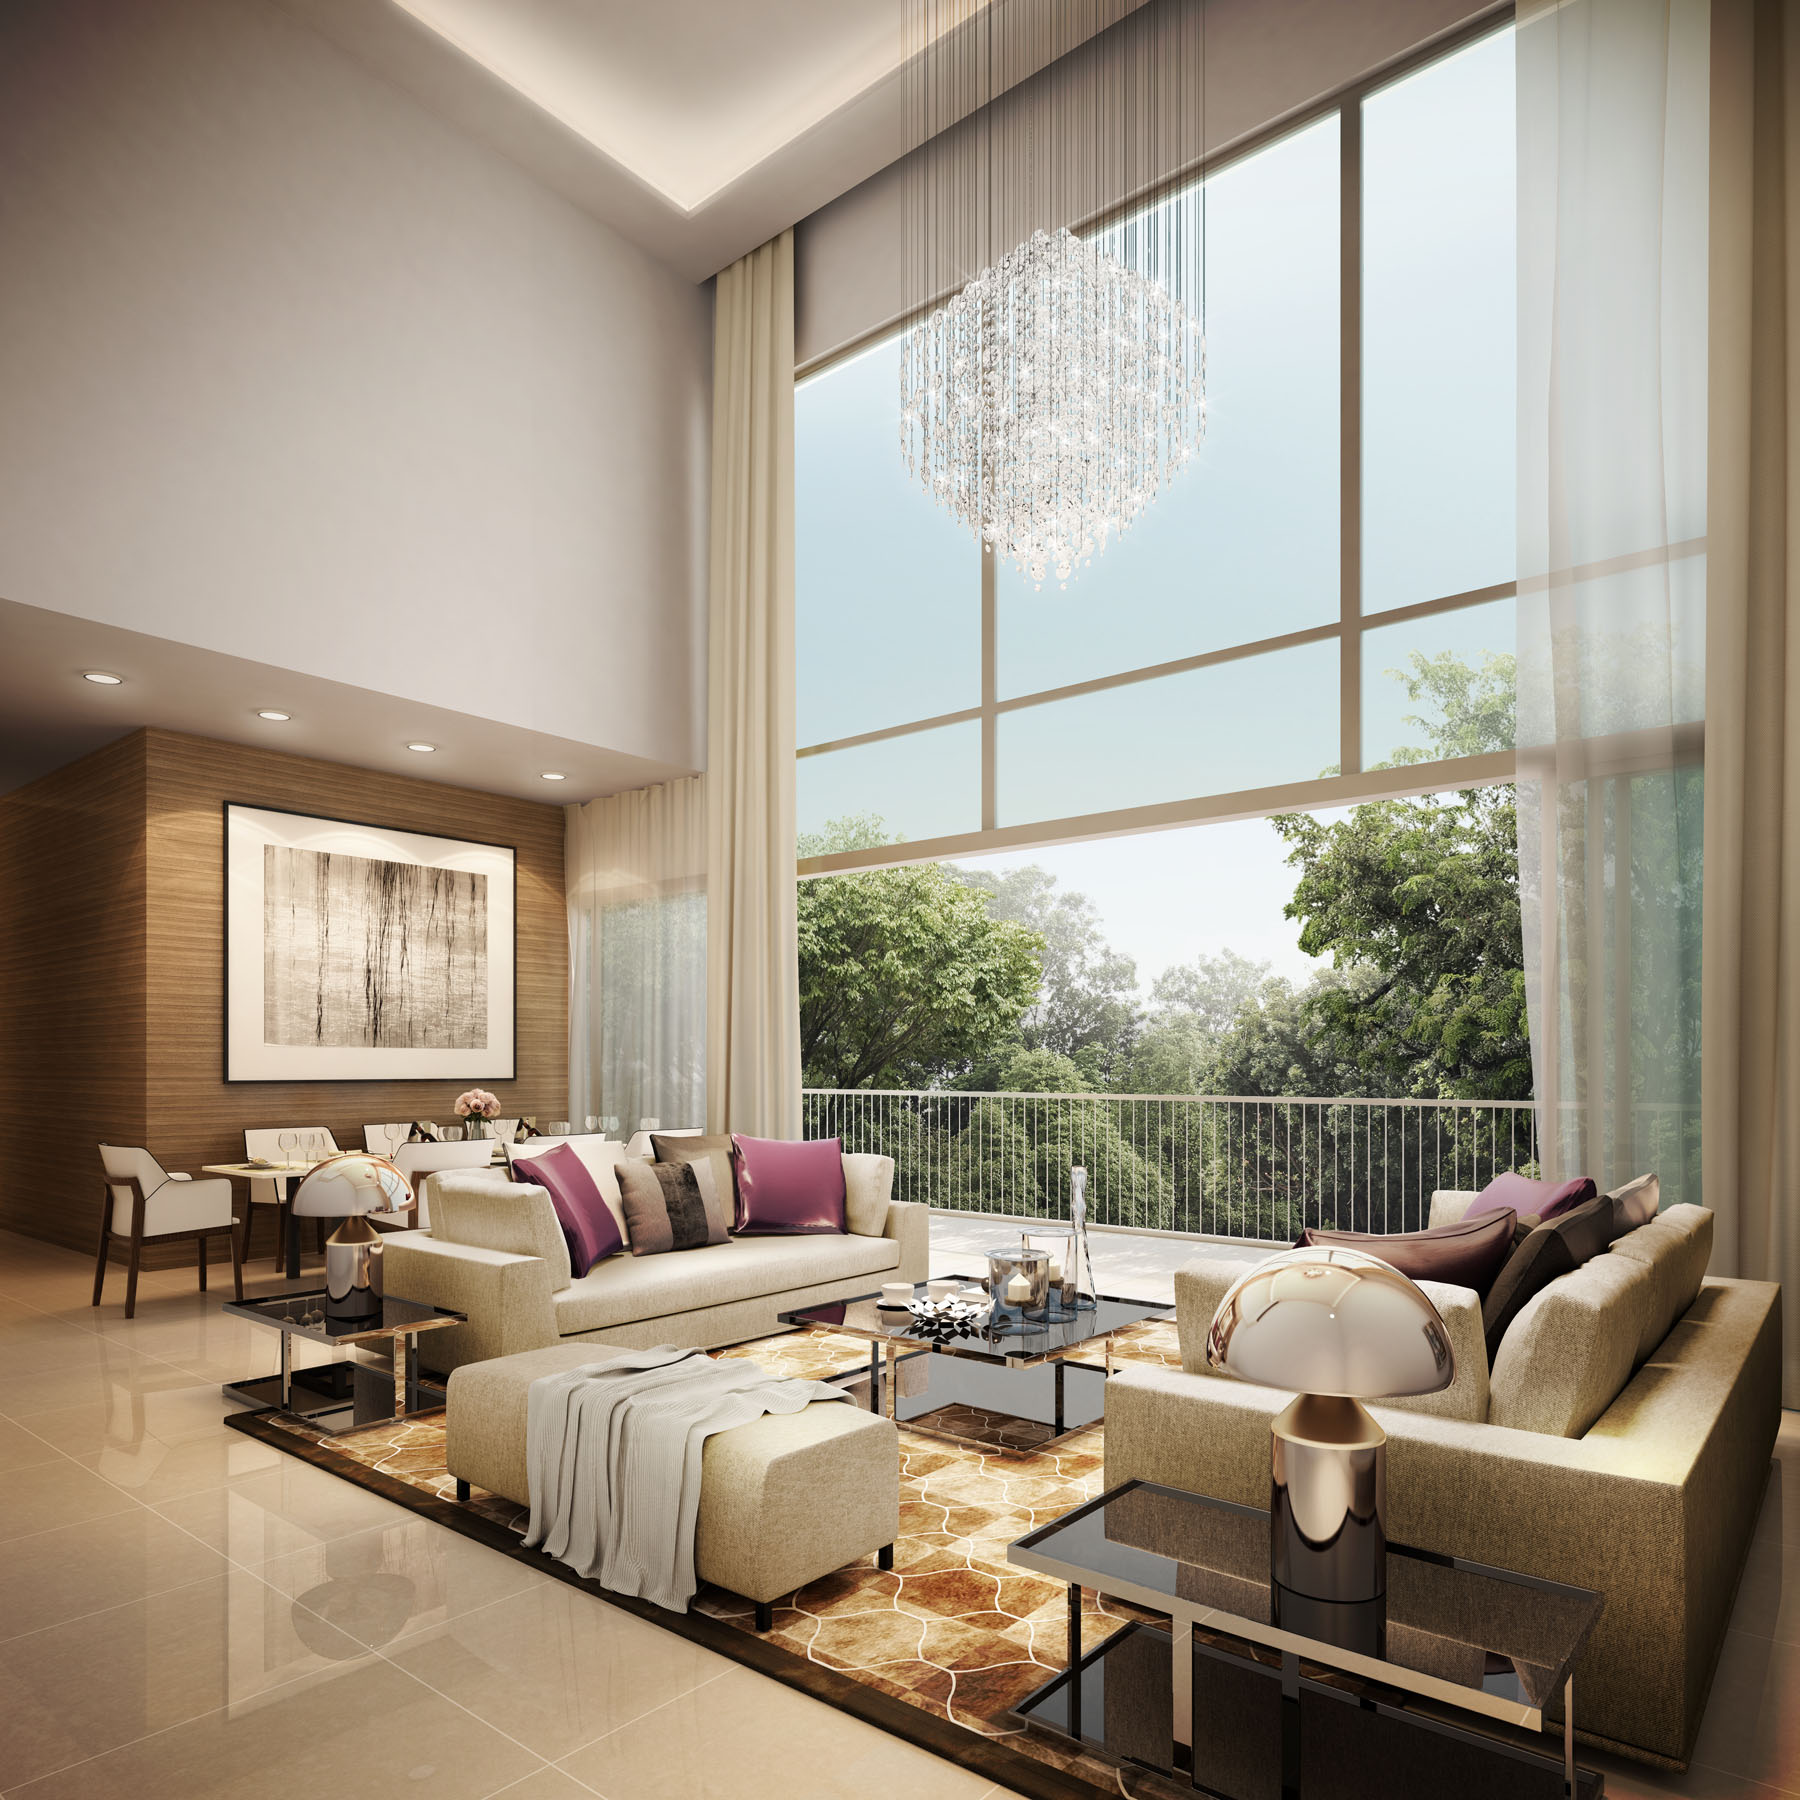 The Glades Tanah Merah New Launch Tanah Merah Bedok Rise Real Estate Investment